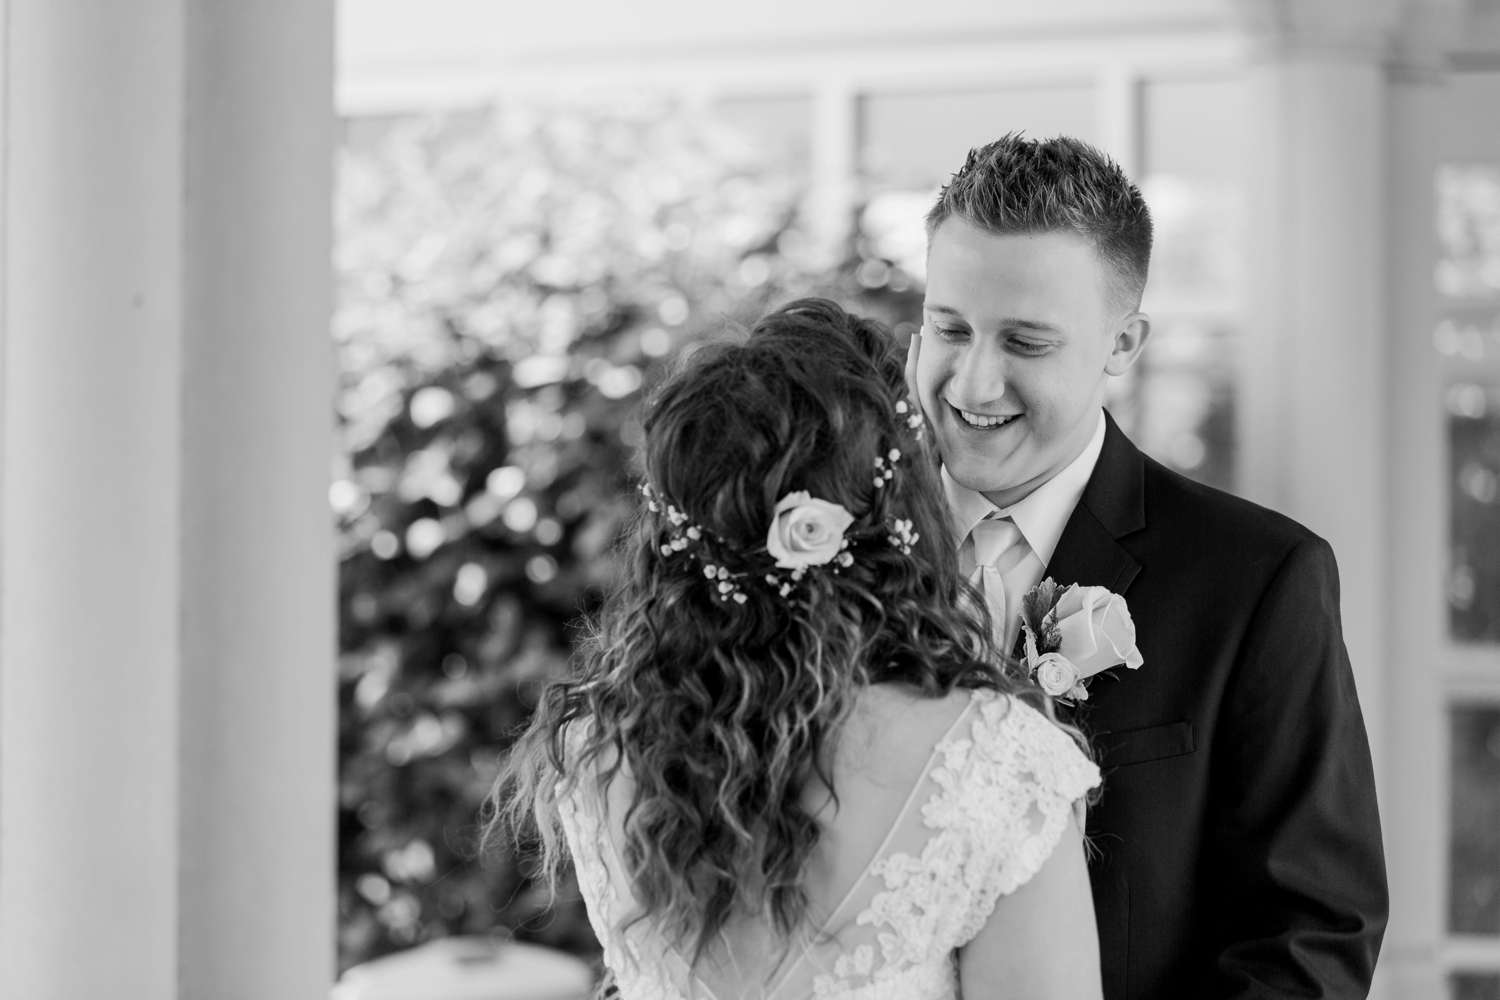 Community_Life_Center_Indianapolis_Indiana_Wedding_Photographer_Chloe_Luka_Photography_6864.jpg